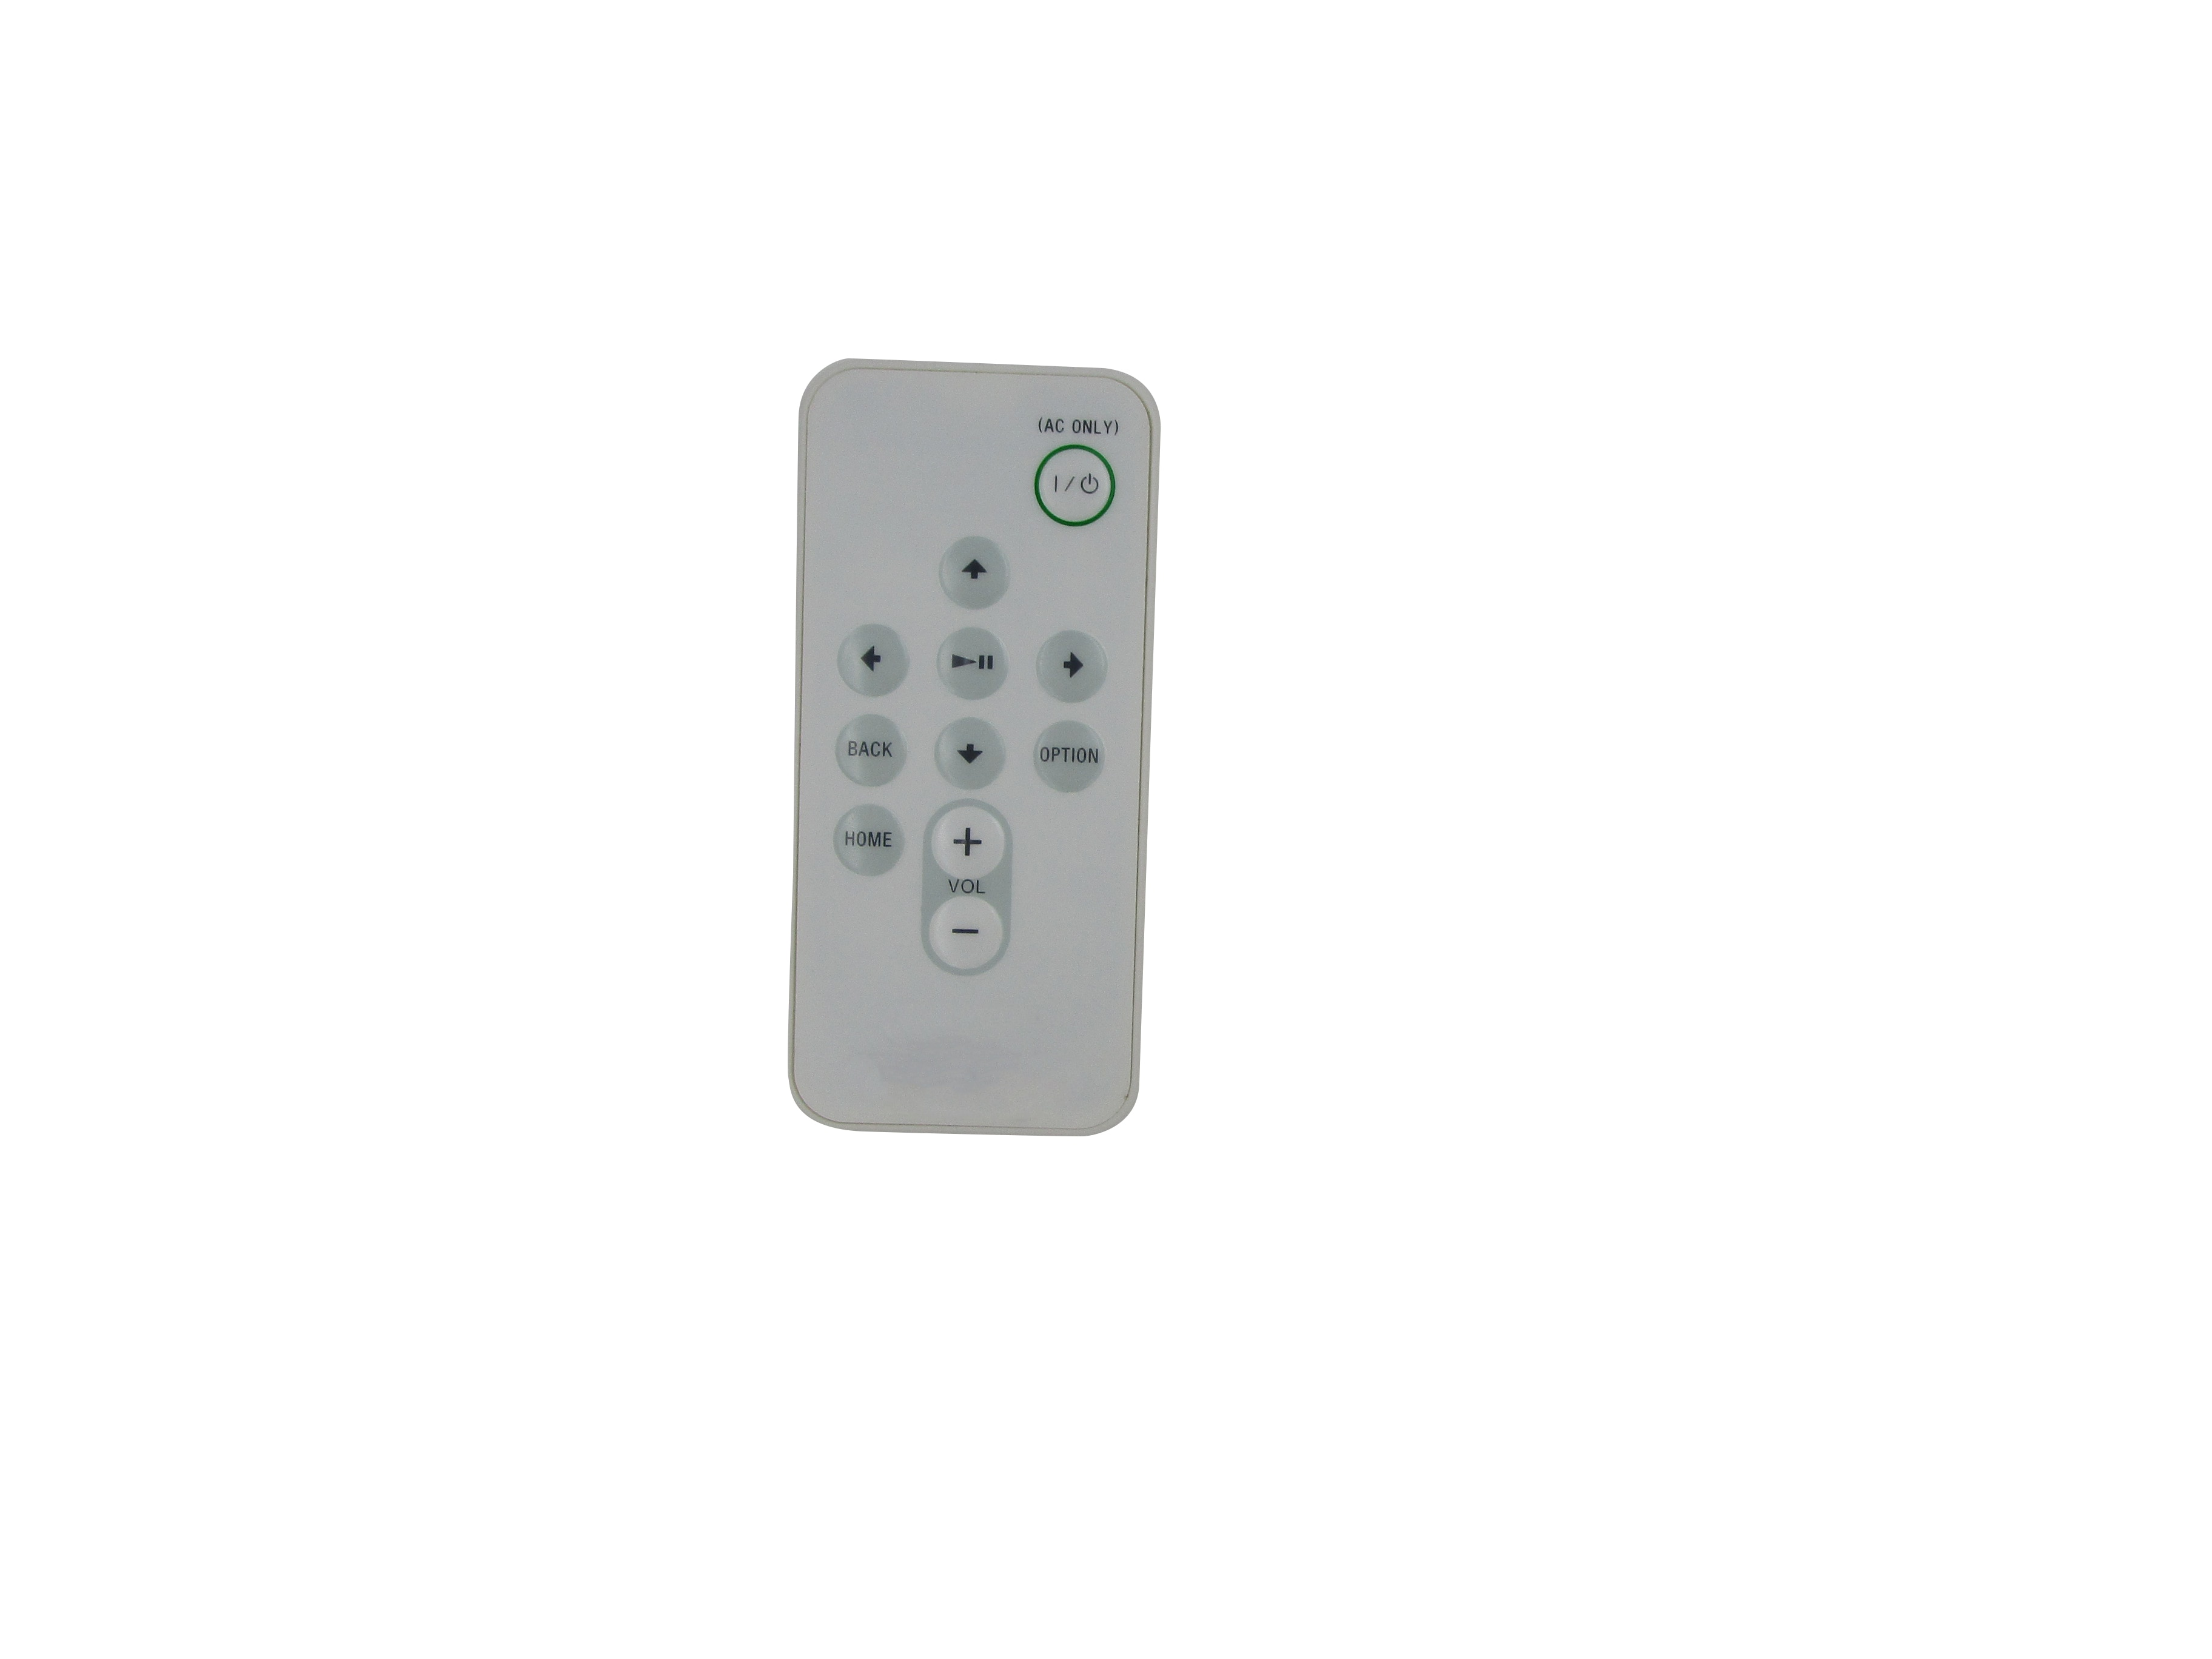 Remote Control For Sony  NW-E060 NW-E060K RMT-CNWM7 NW-S760 NW-S760BT NW-S760K Portable Personal Audio System